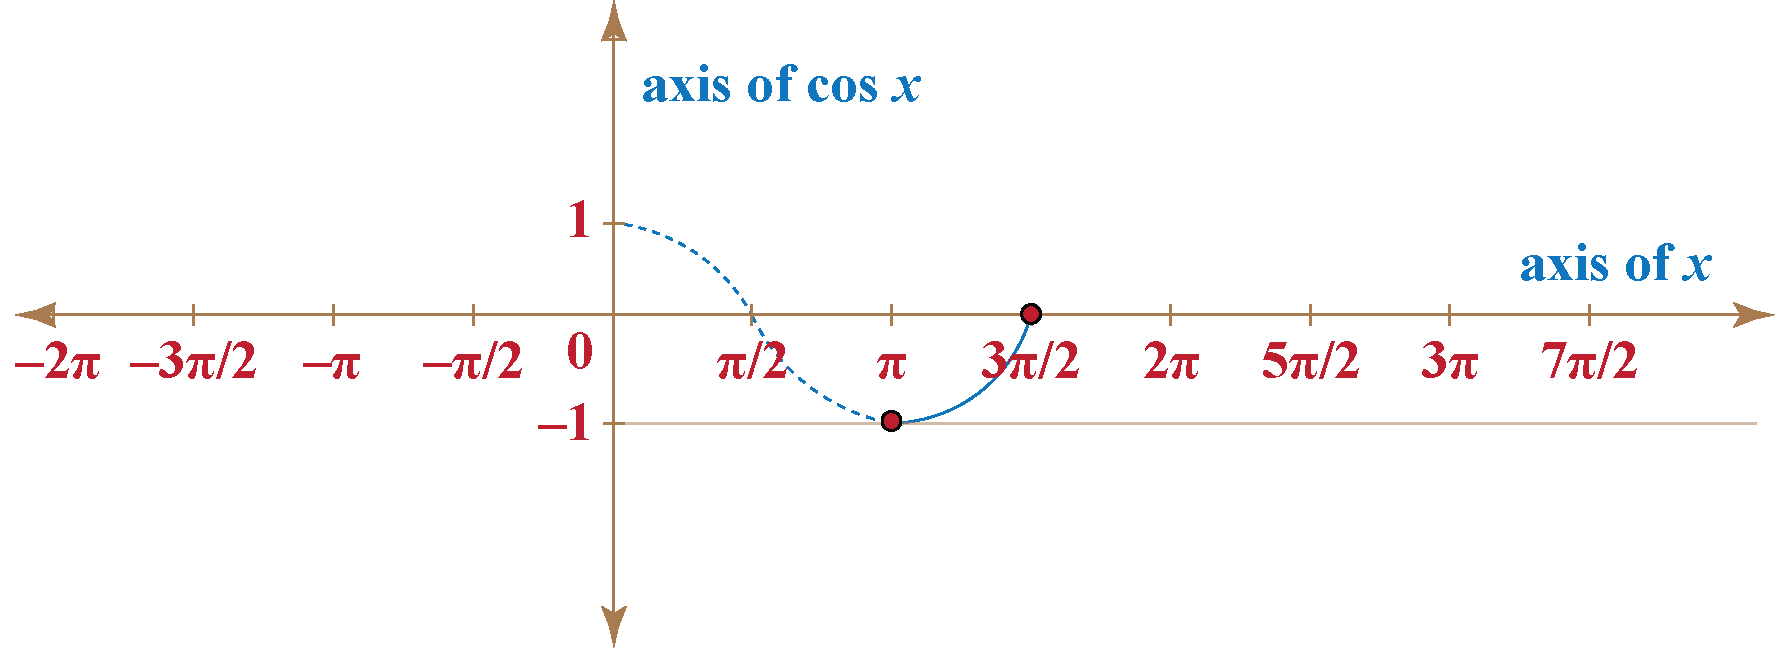 Negative axis of cosine x